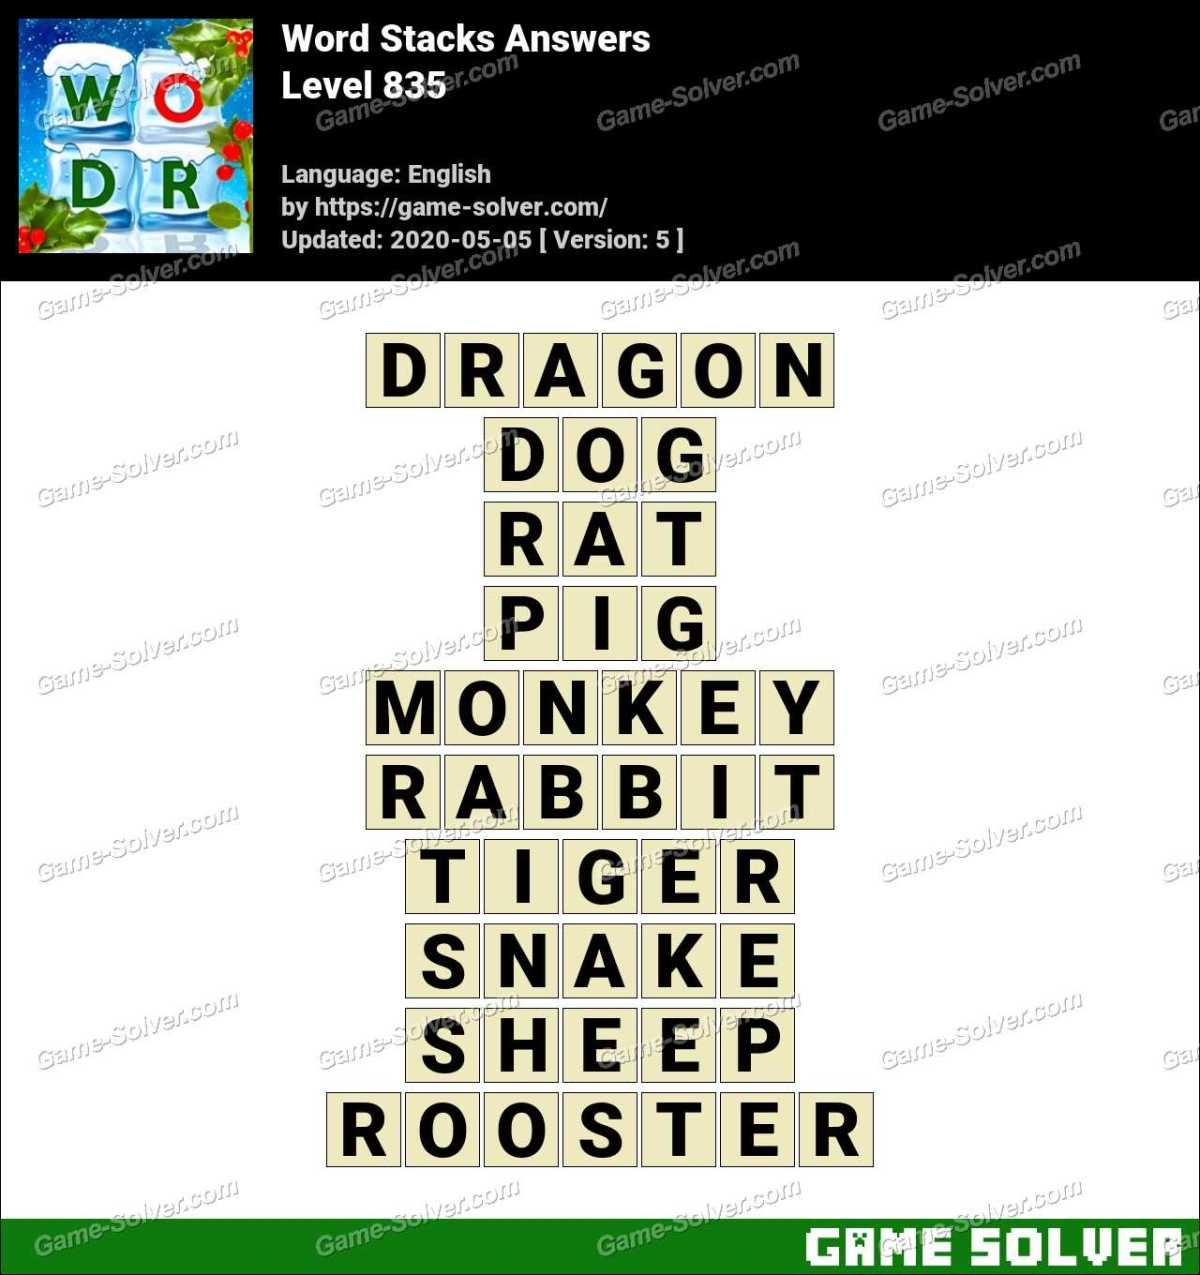 Word Stacks Level 835 Answers